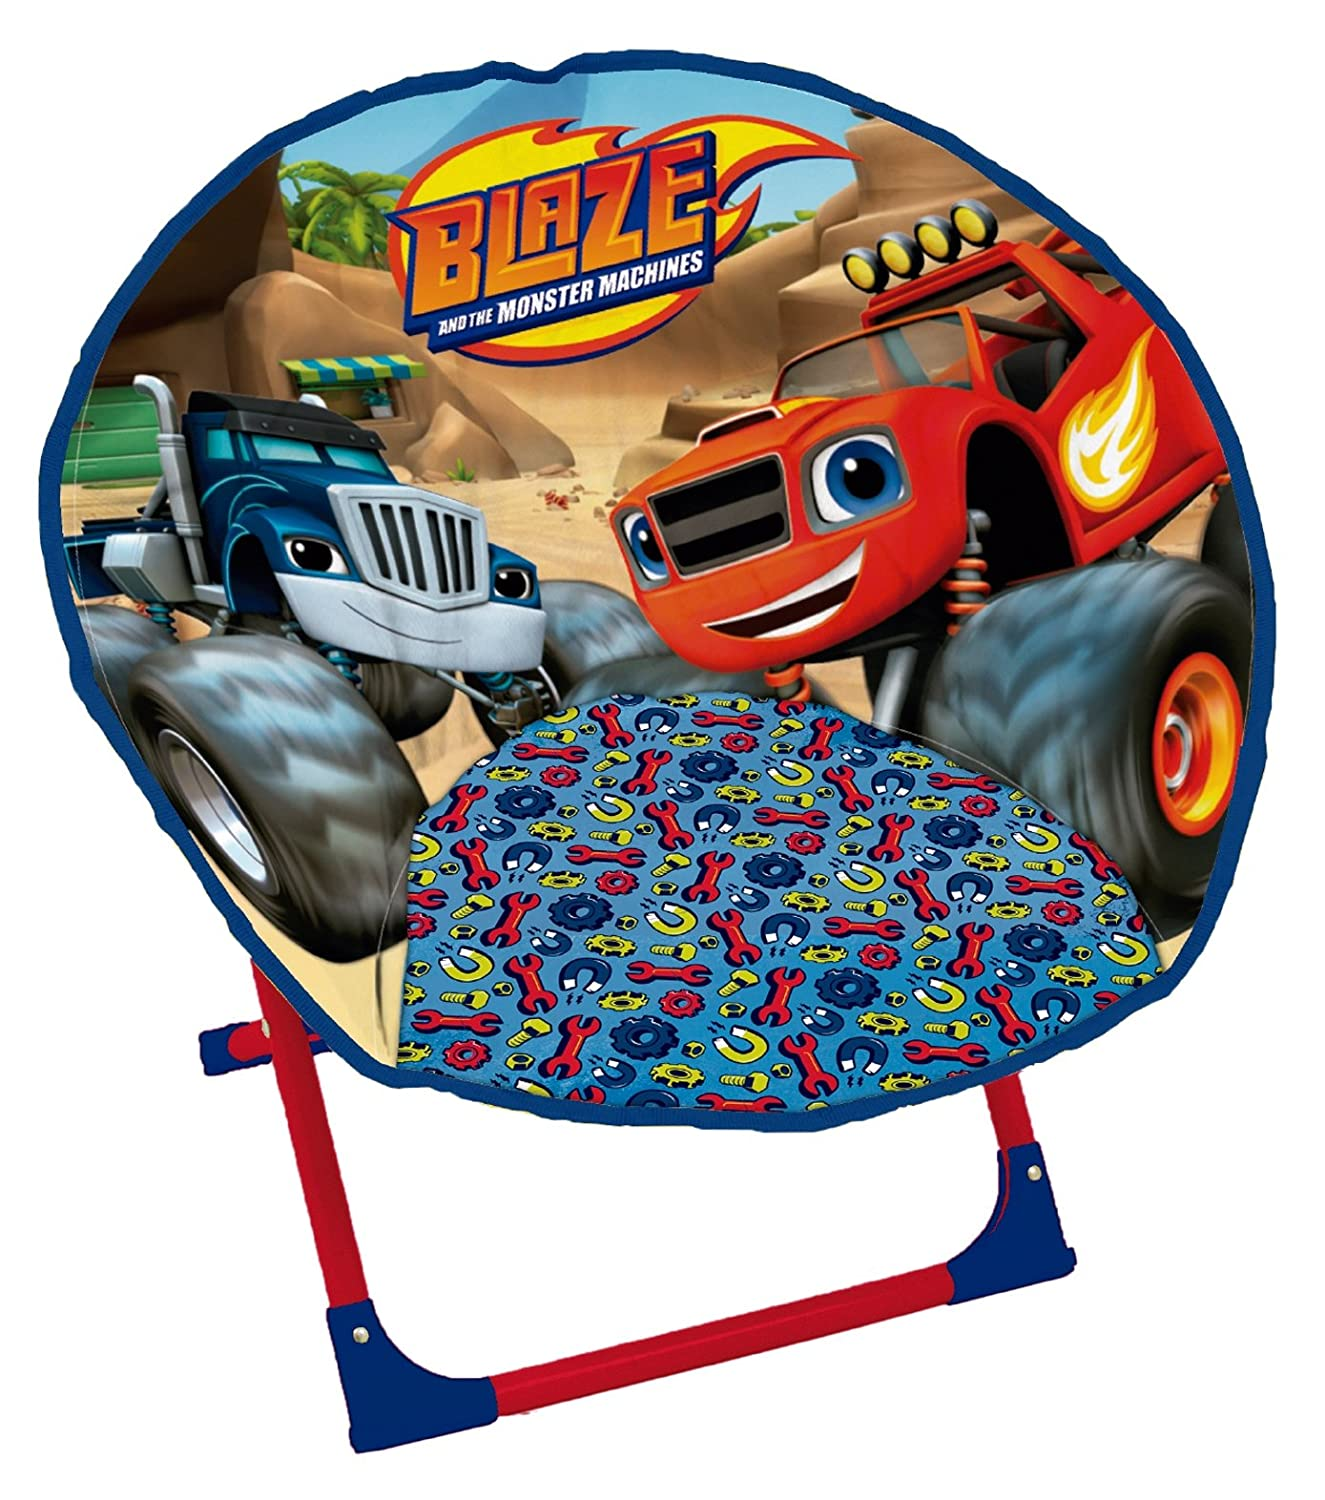 Arditex Blaze Licensed Polyester Folding Moon Chair with Metal Frame and Monster Machines, Fabric, 50 x 50 x 50 cm BZ11519